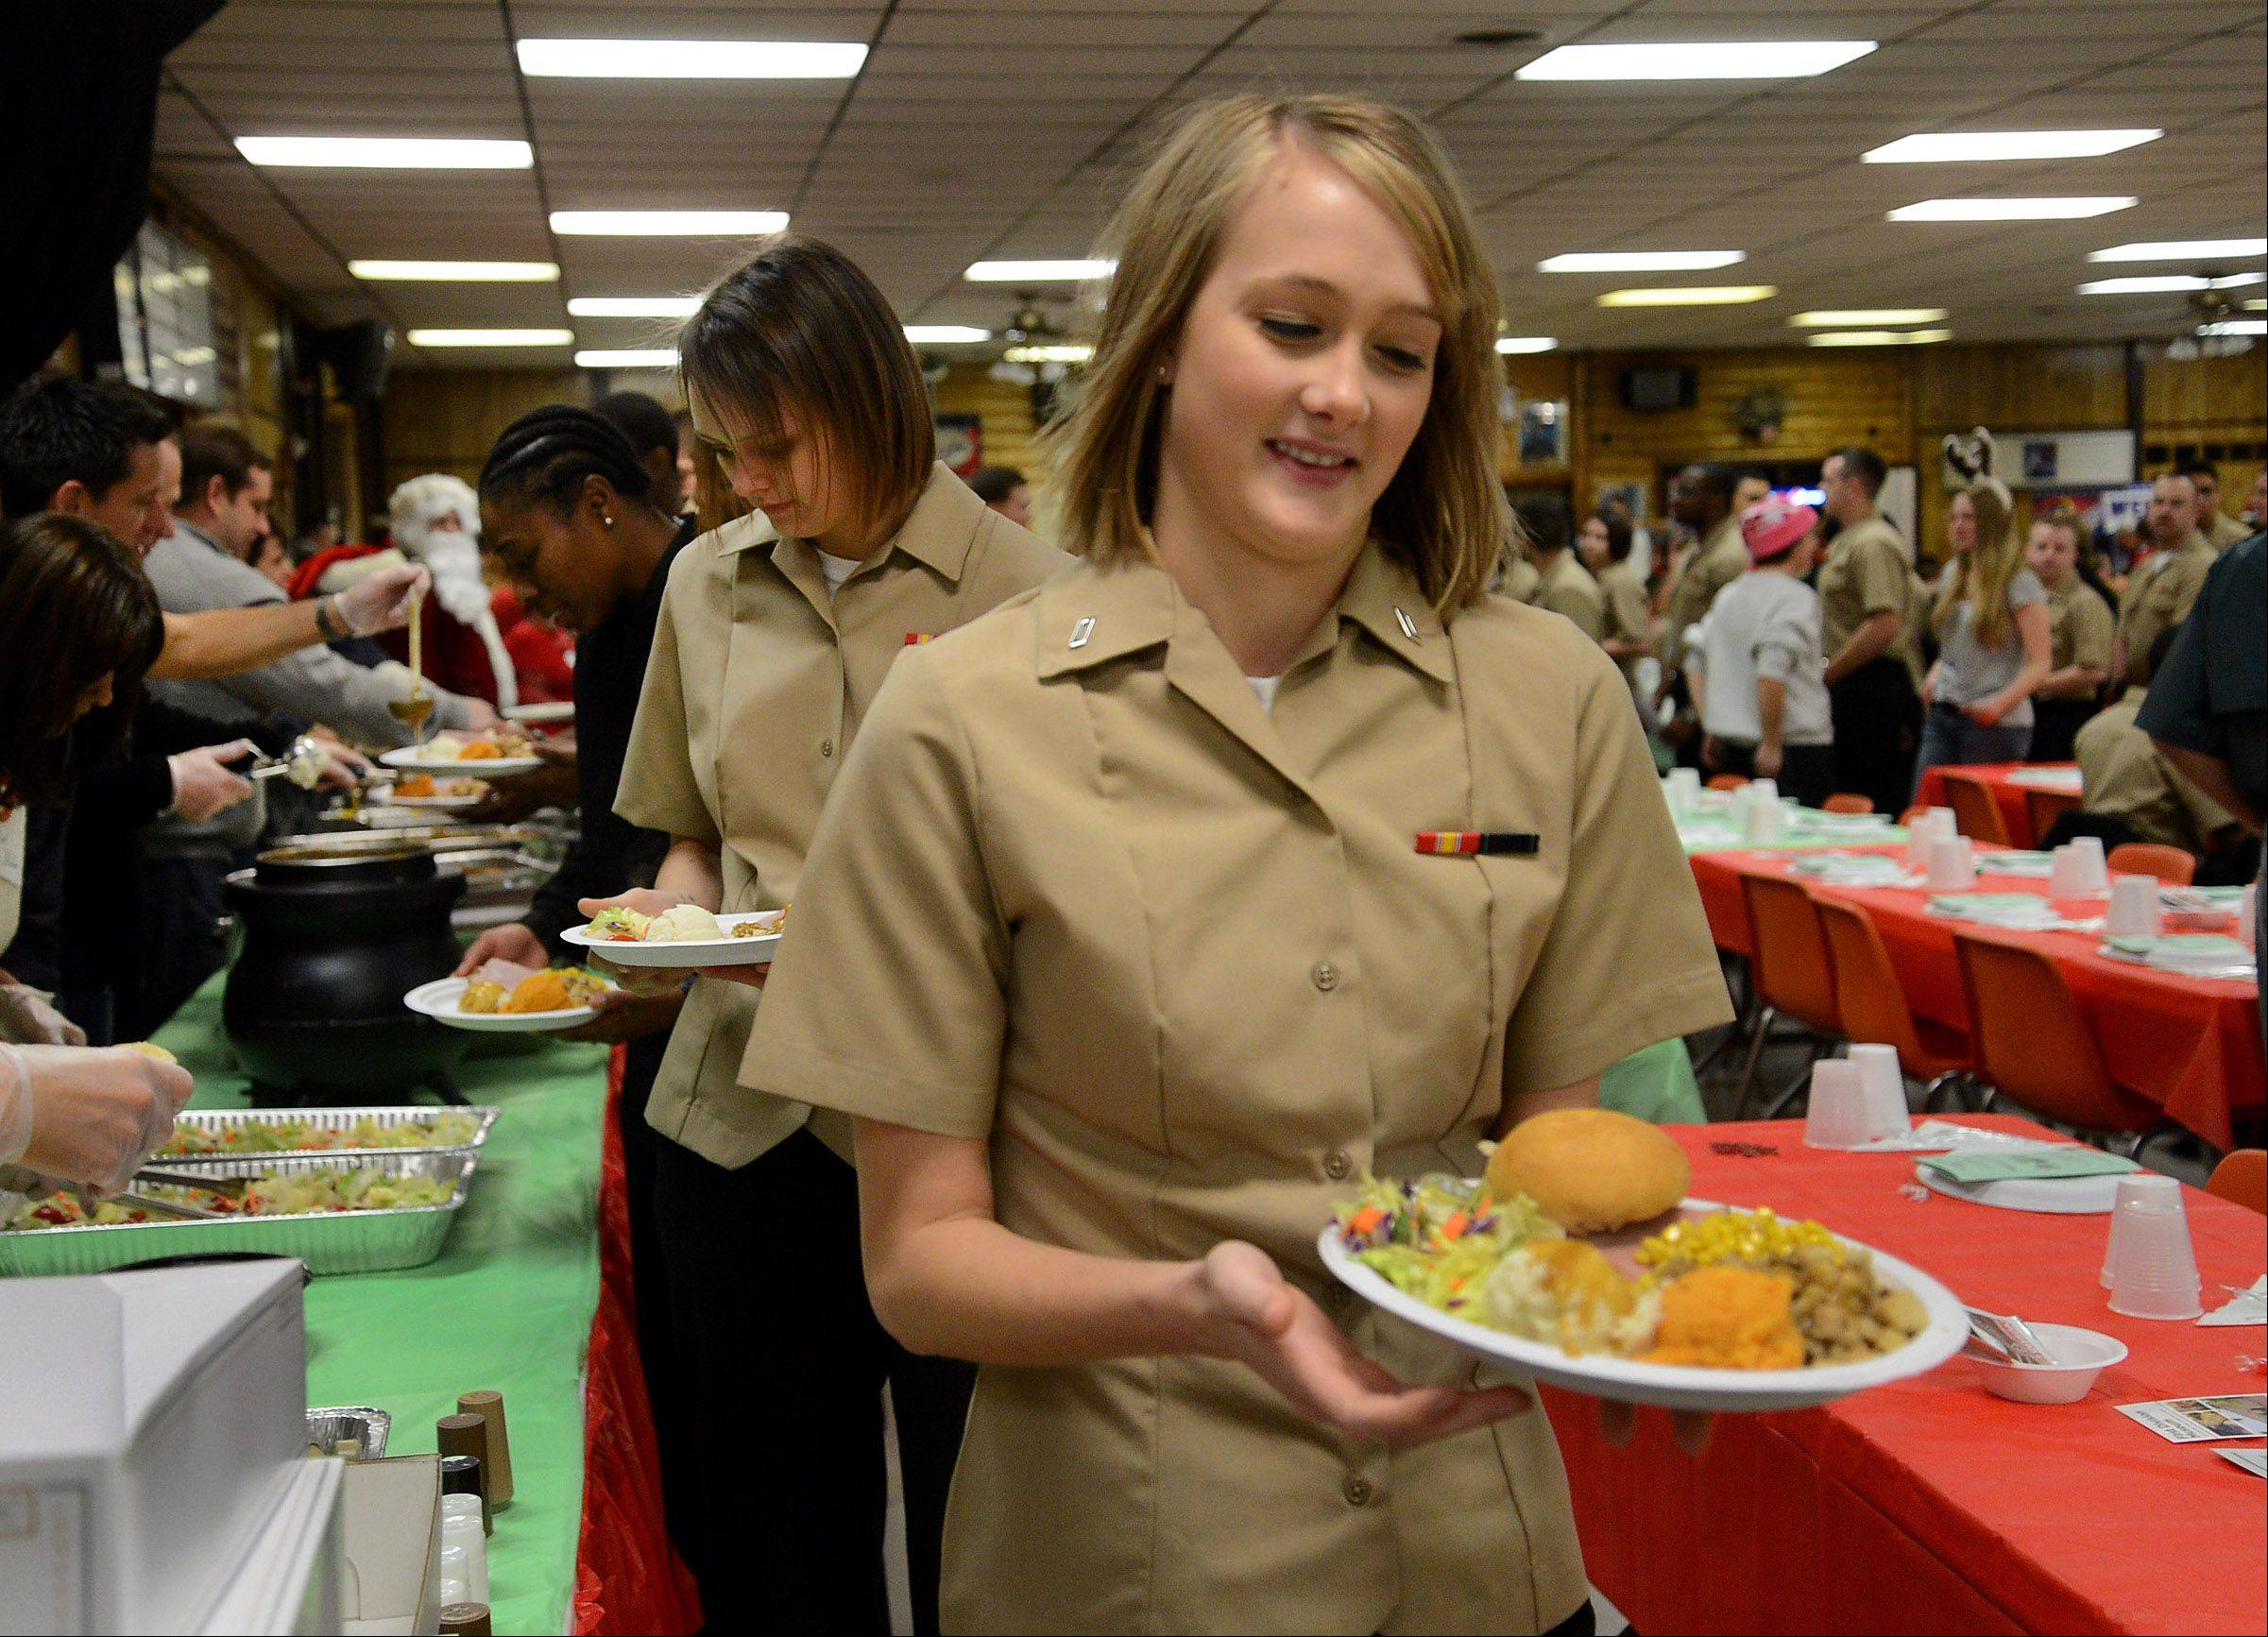 Electrician's Mate Nicole Hibler fills her plate as the VFW in Antioch hosted 350 sailors from Great Lakes and 50 veterans from Lovell and Hines hospitals Saturday for a full Christmas dinner.